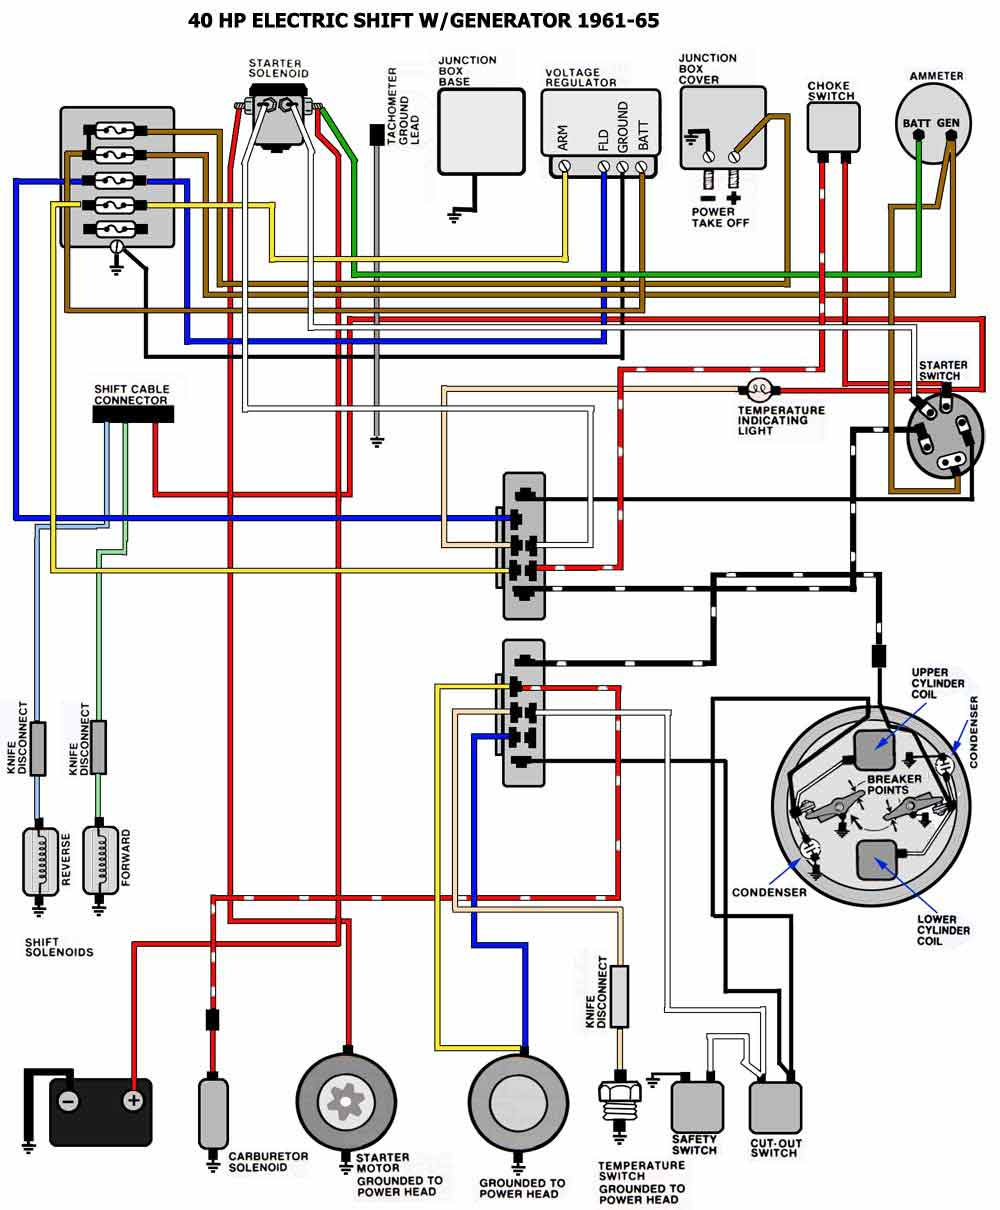 Wiring Diagram Evinrude 2015 E Tec 40 -Hydra Sport Wiring Diagram | Begeboy Wiring  Diagram SourceBegeboy Wiring Diagram Source